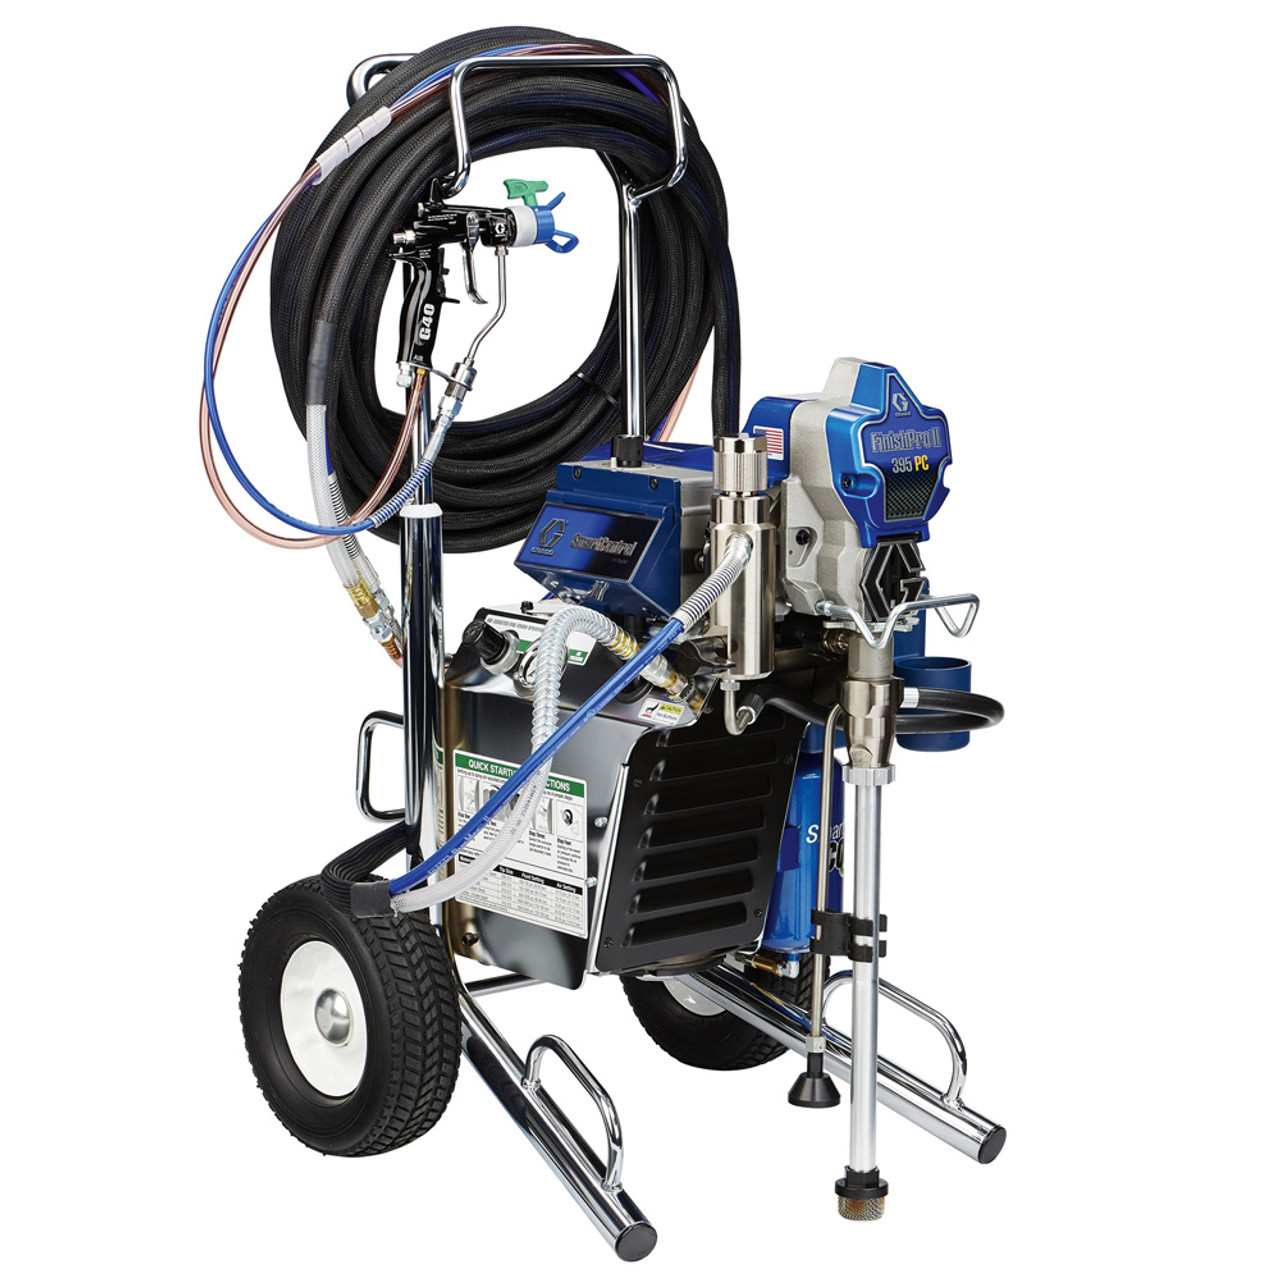 The Graco finish pro 11 395 air assited airless spray set